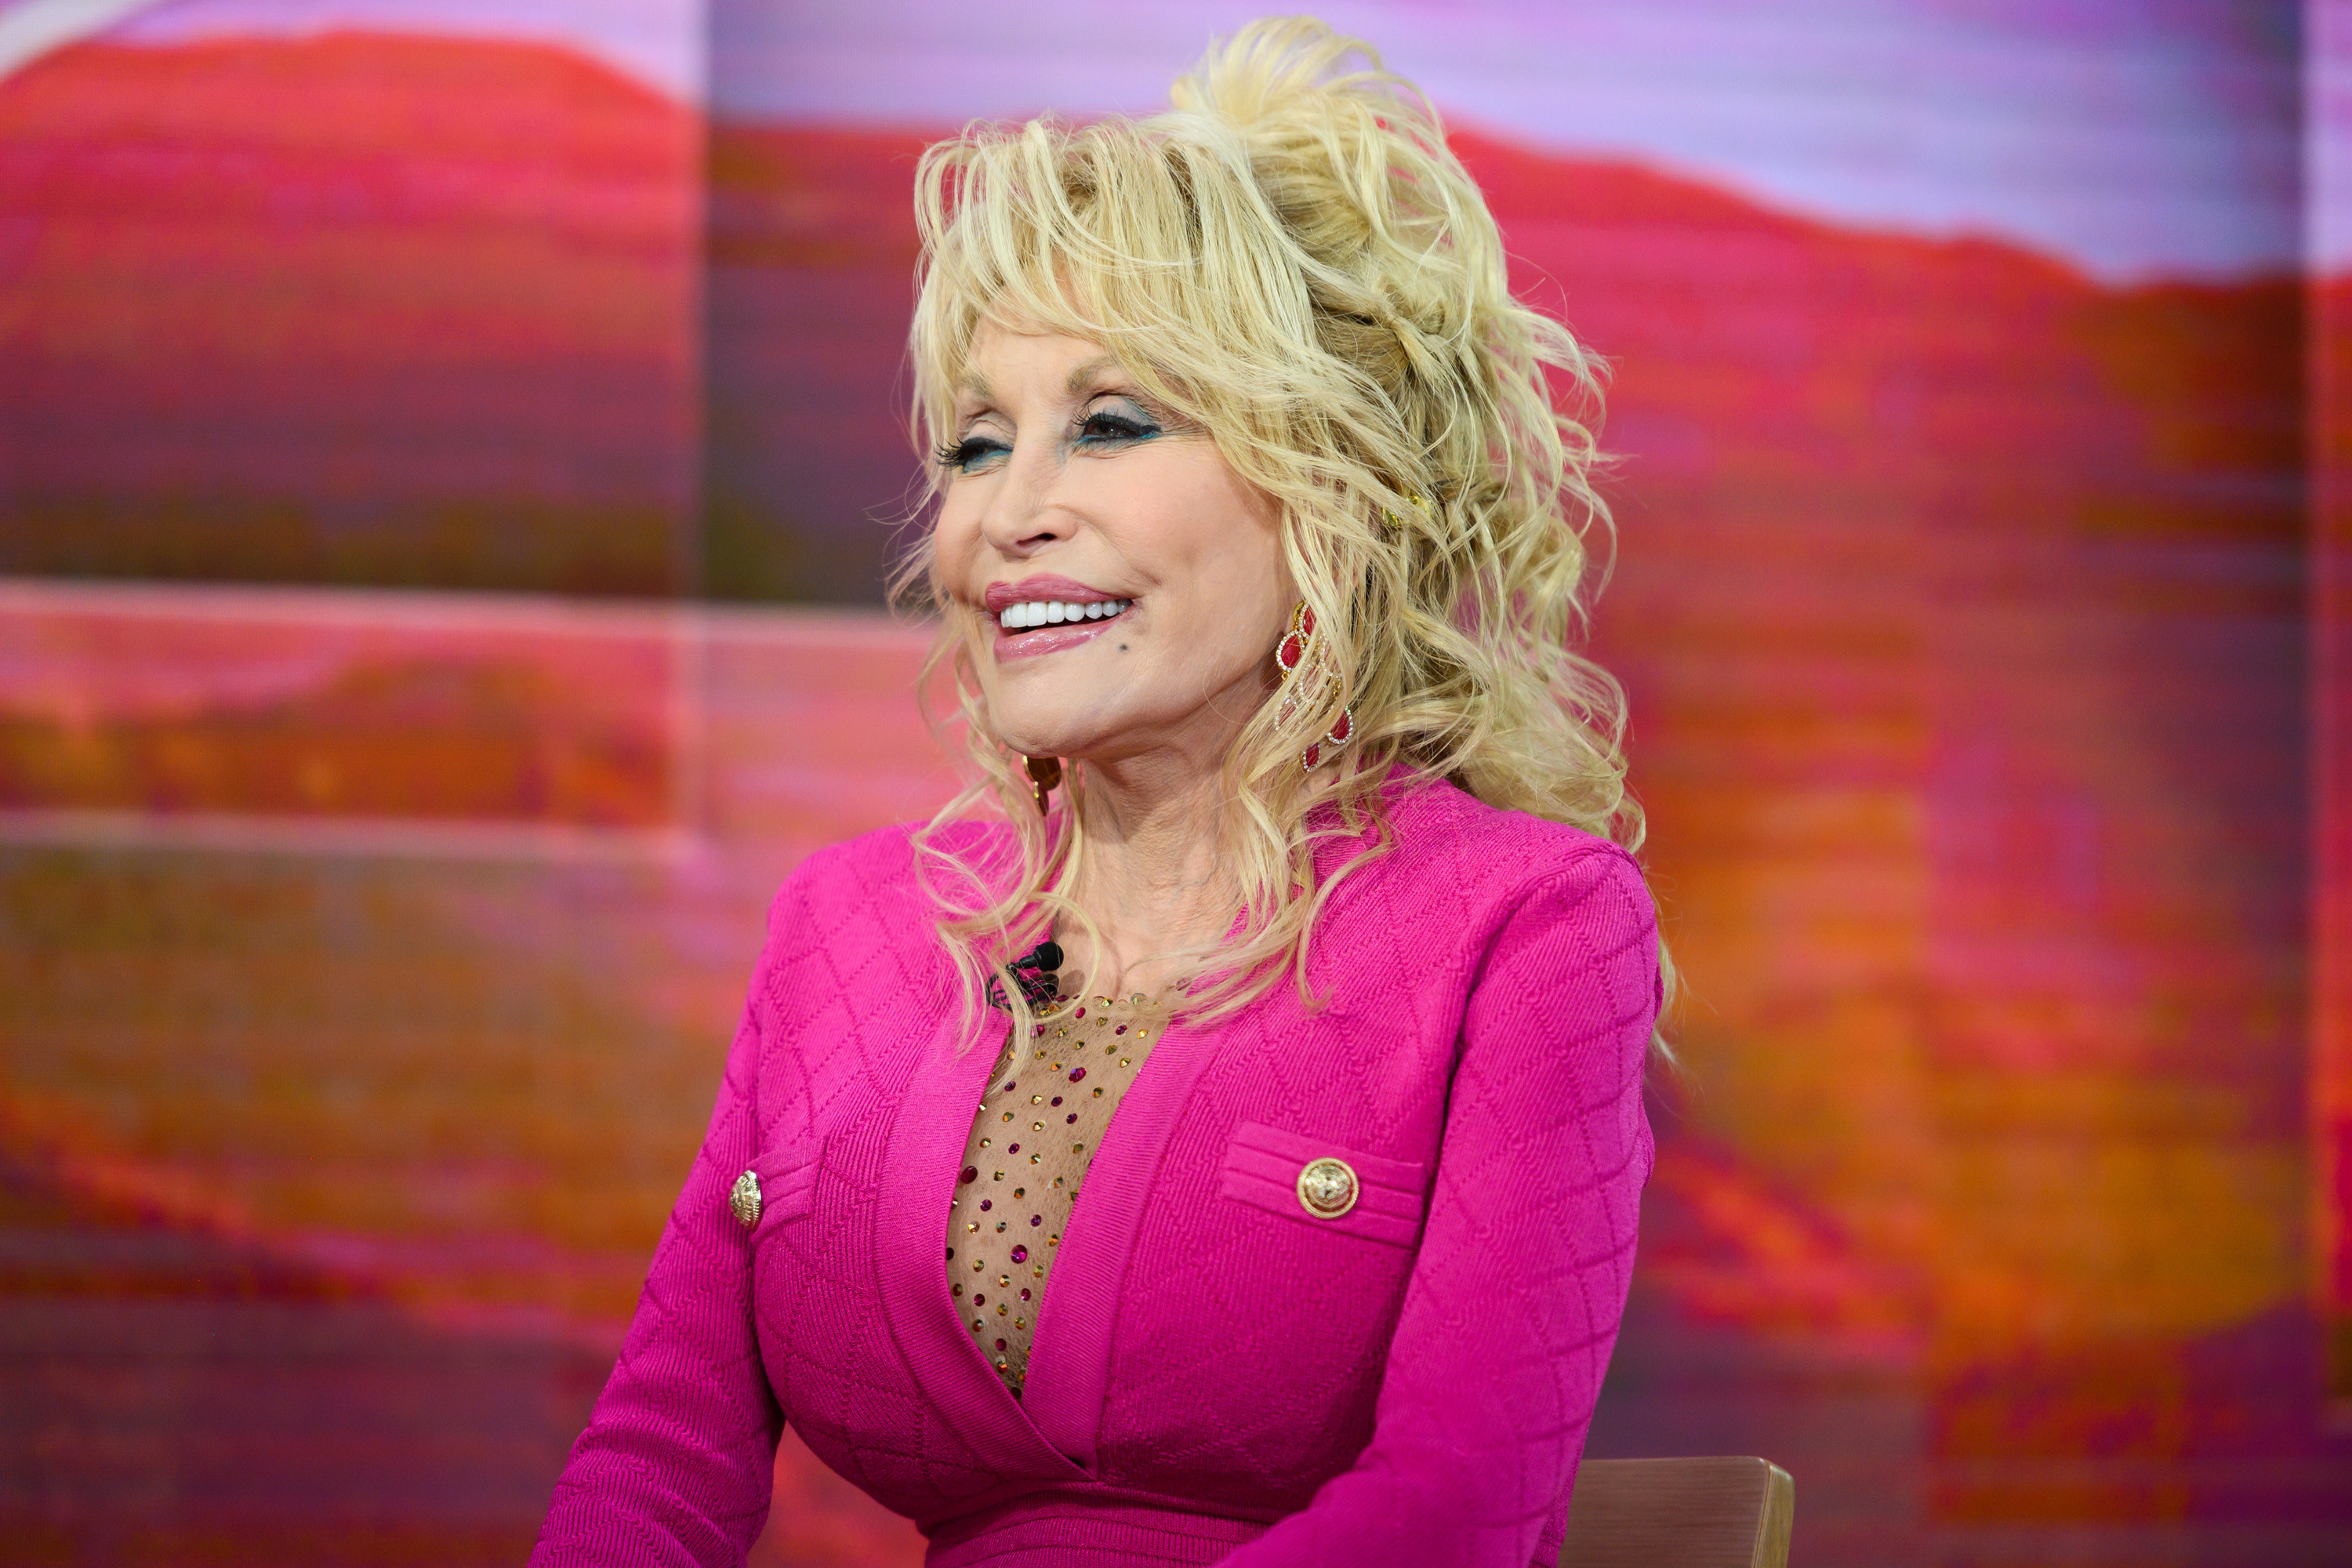 Dolly smiles during an interview